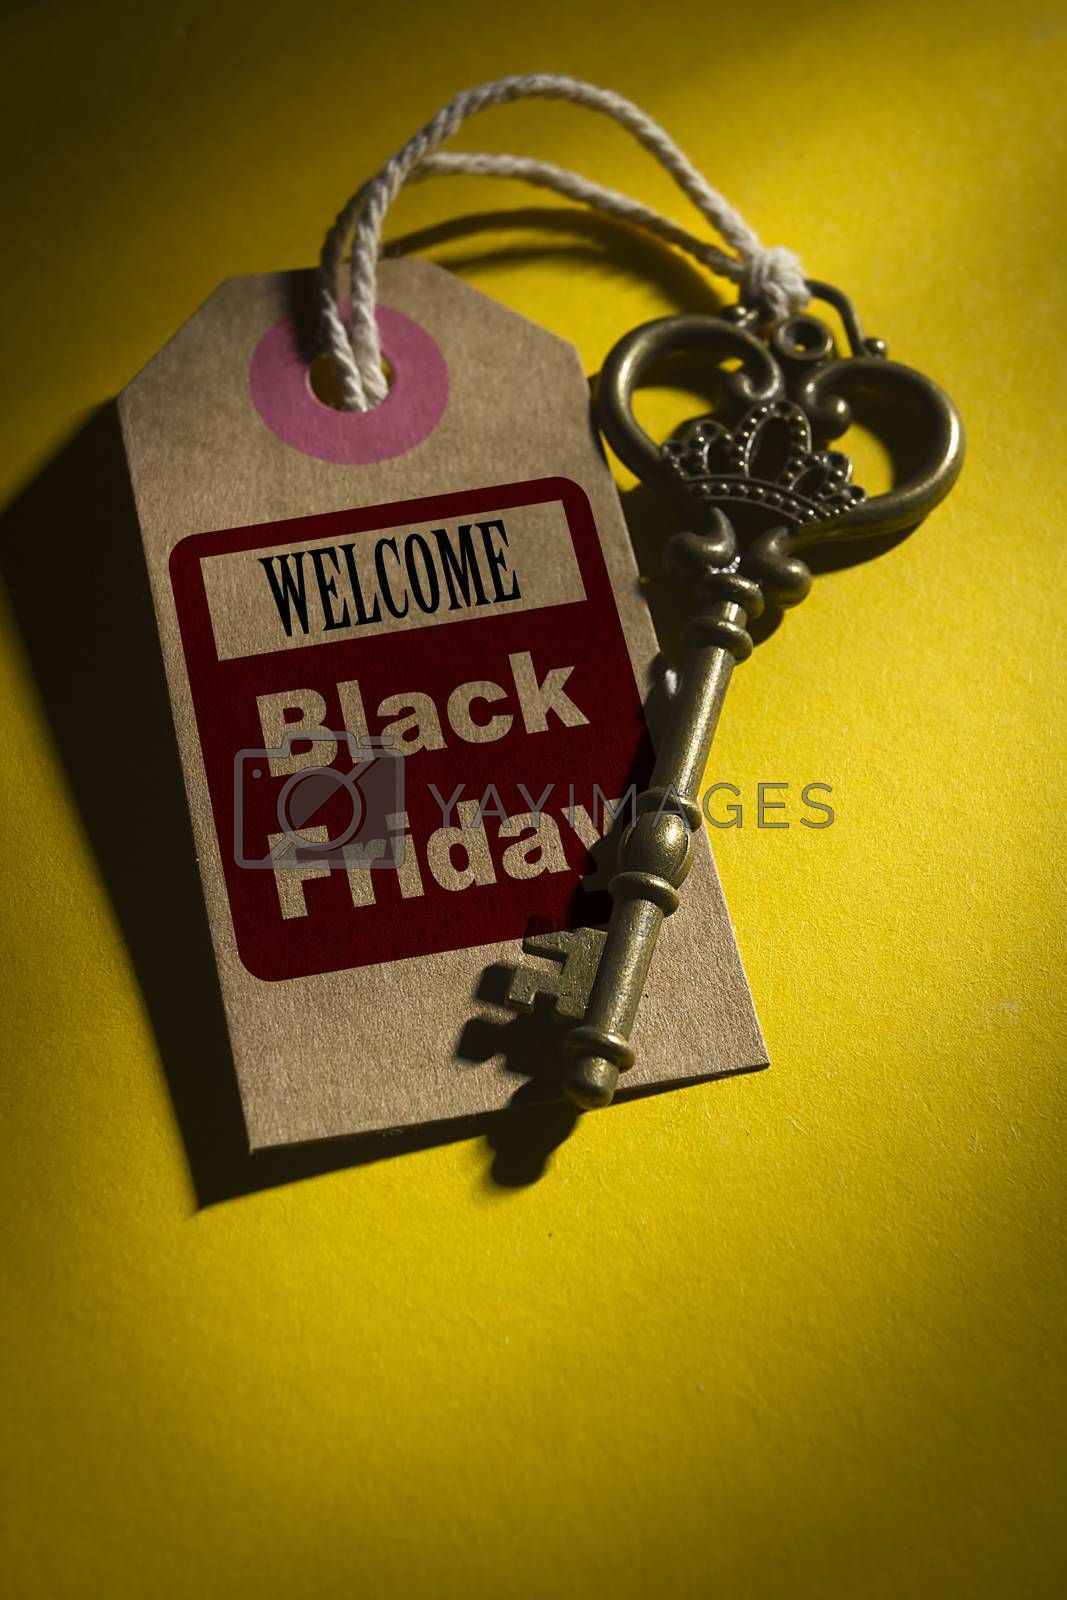 Vintage Key with Welcome Label - Black Friday